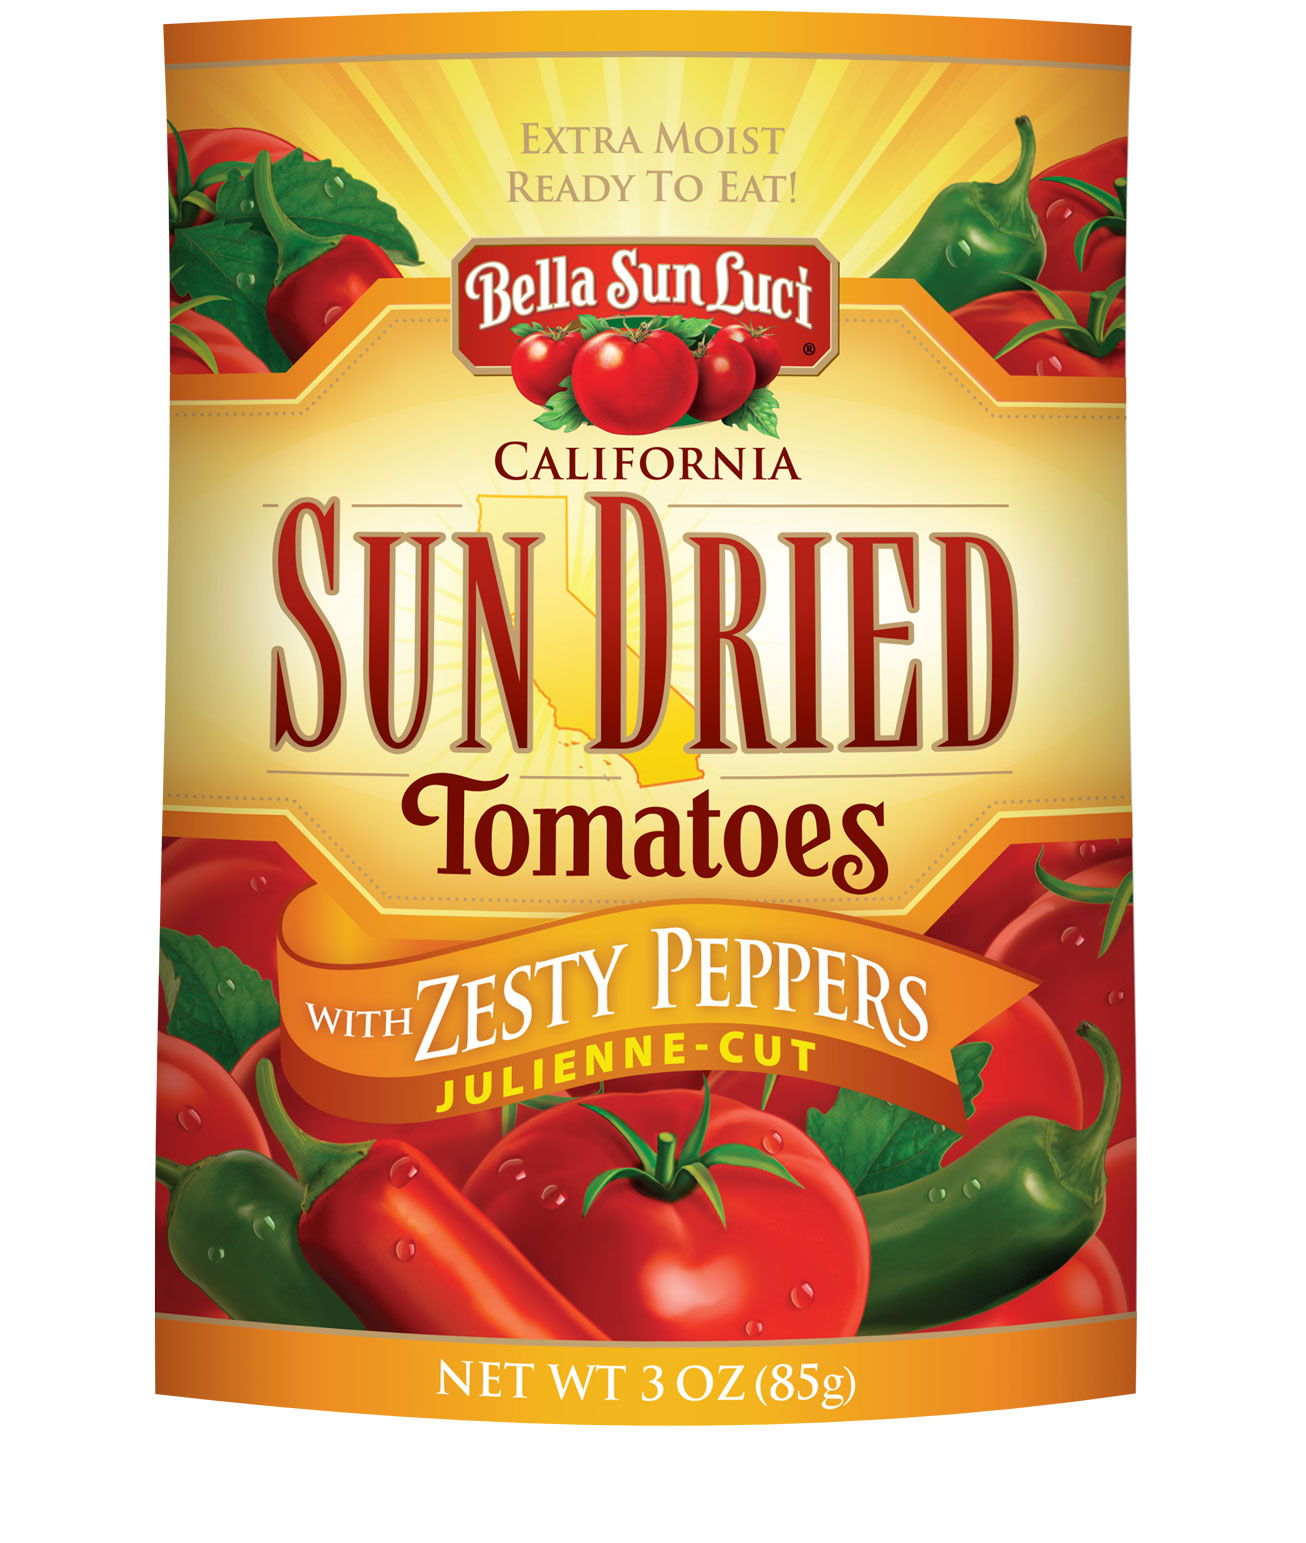 Sun Dried Tomatoes Julienne-Cut with Zesty Peppers (Resealable Pouch)